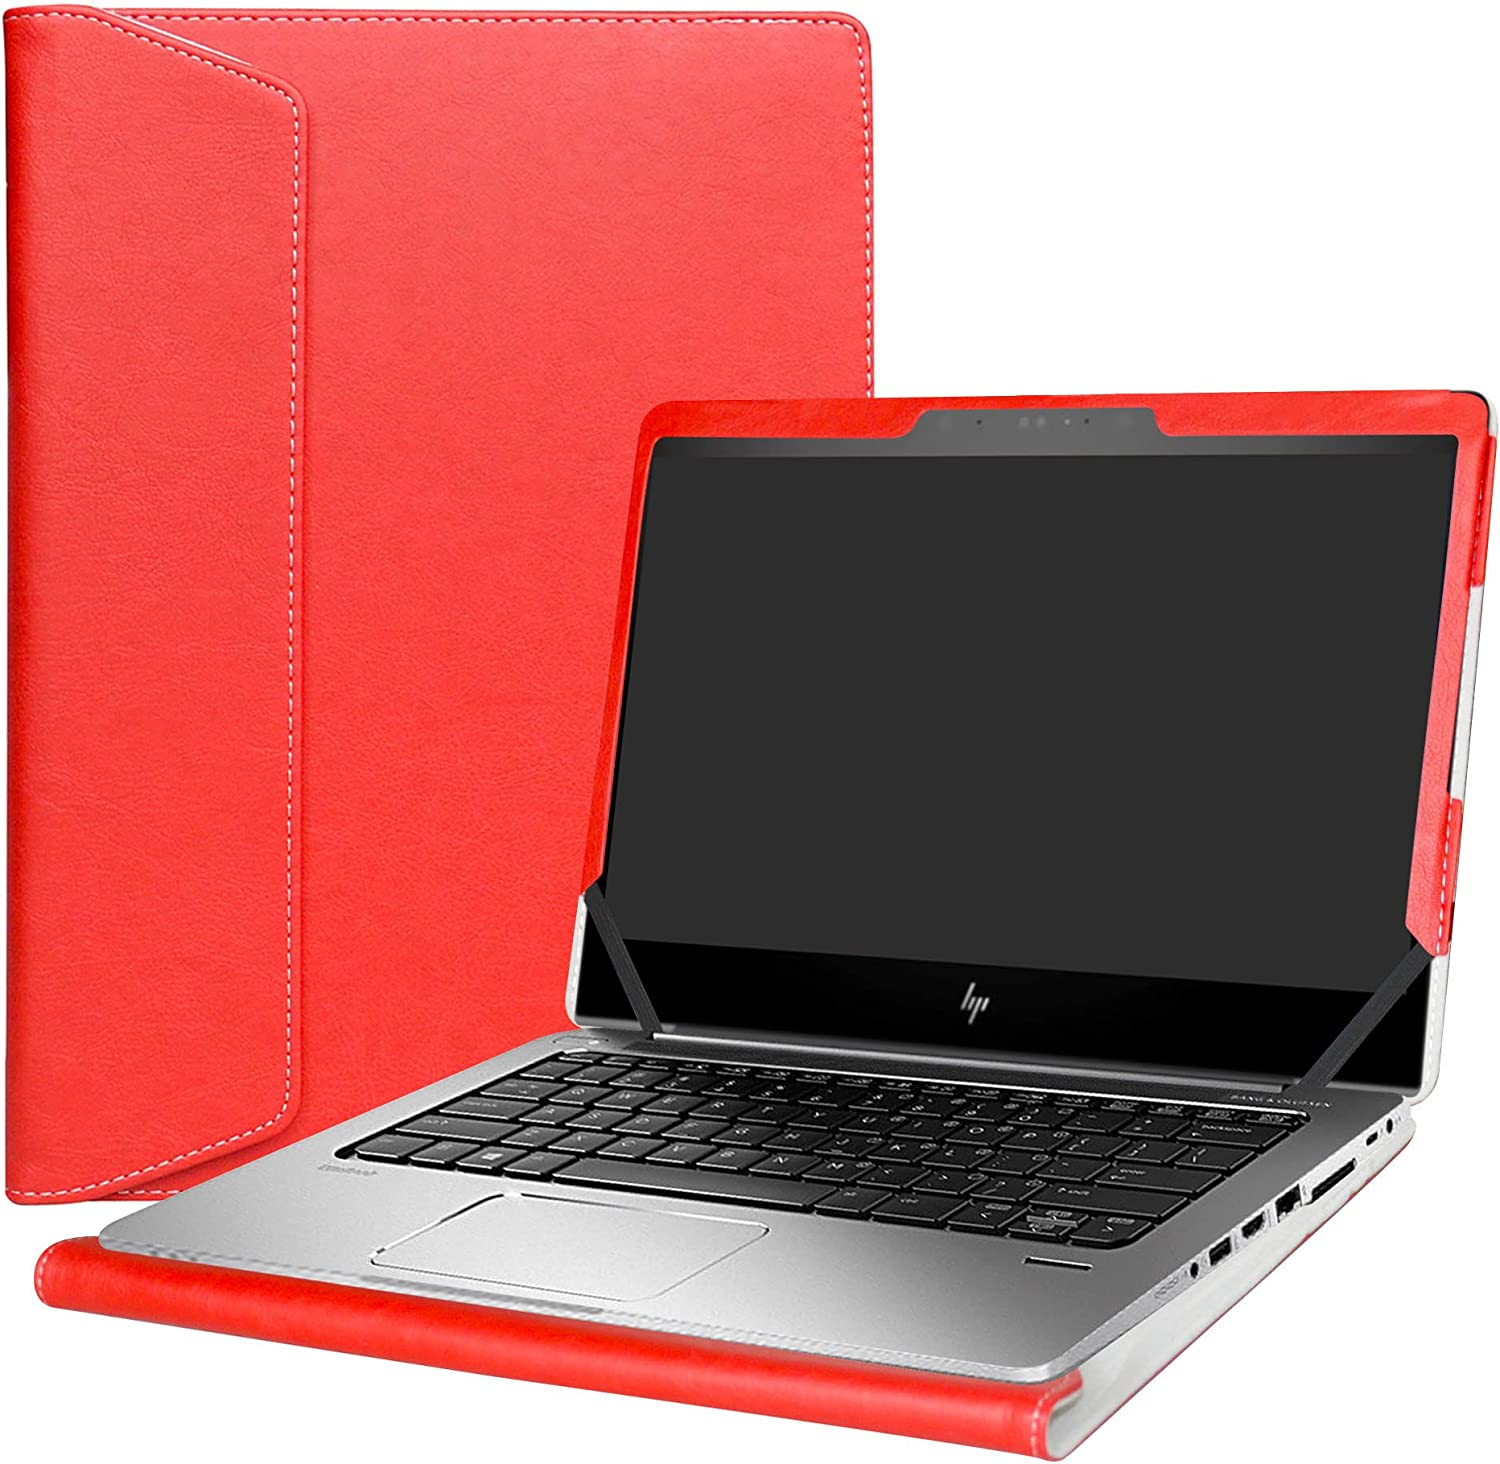 "Alapmk Protective Case Cover For 13.3"" HP EliteBook 830 G5 G6/EliteBook 735 G5 G6 & HP ProBook 430 G6 Laptop(Warning:Not fit EliteBook 830 G4/G3 & ProBook 430 G5/G4/G3),Red"